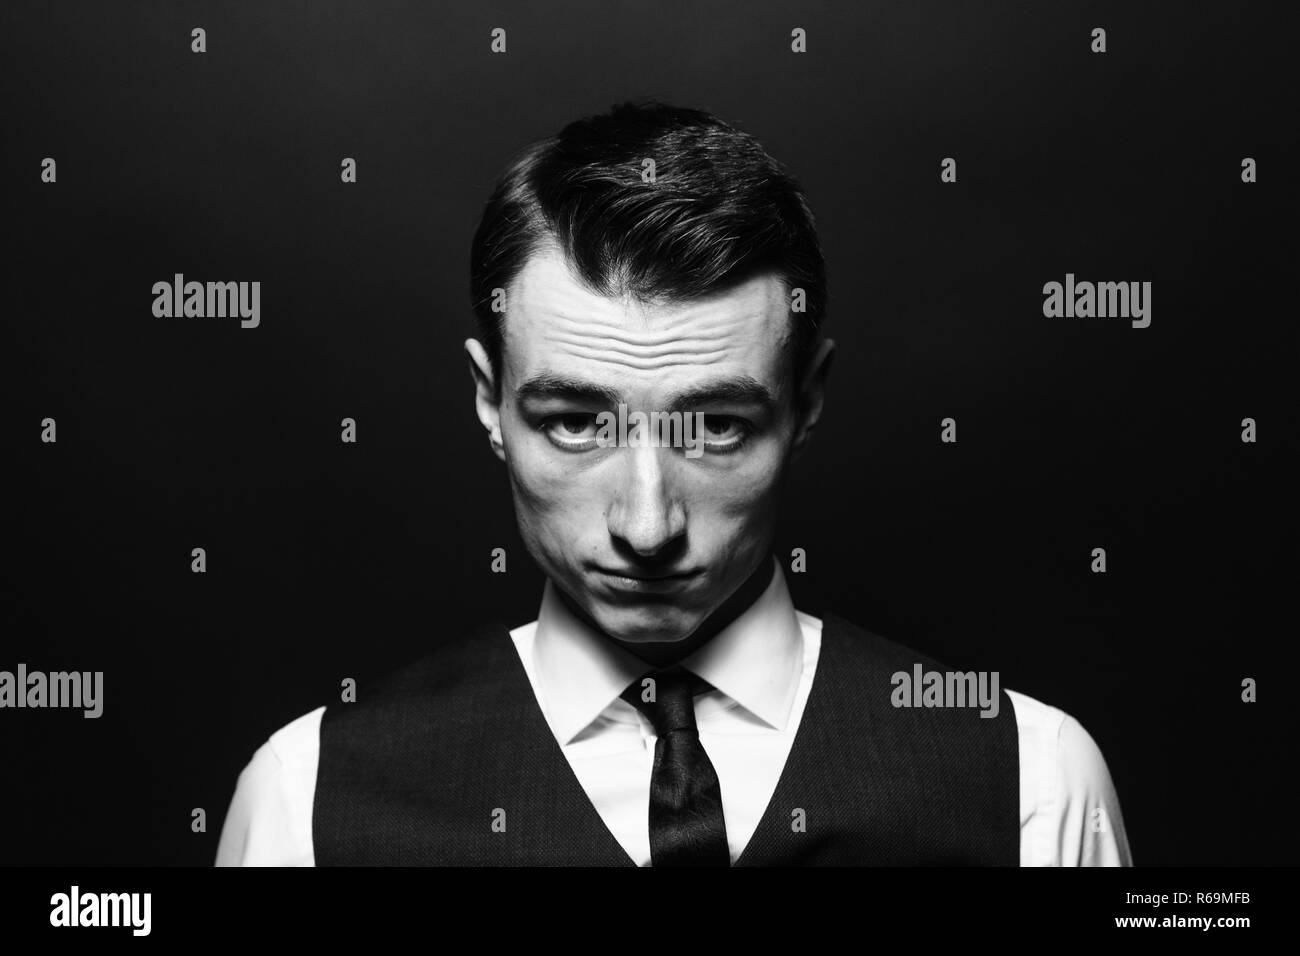 Close up black and white portrait of a young man in a white shirt, black tie and vest, seriously looking at the camera, against plain studio backgroun - Stock Image